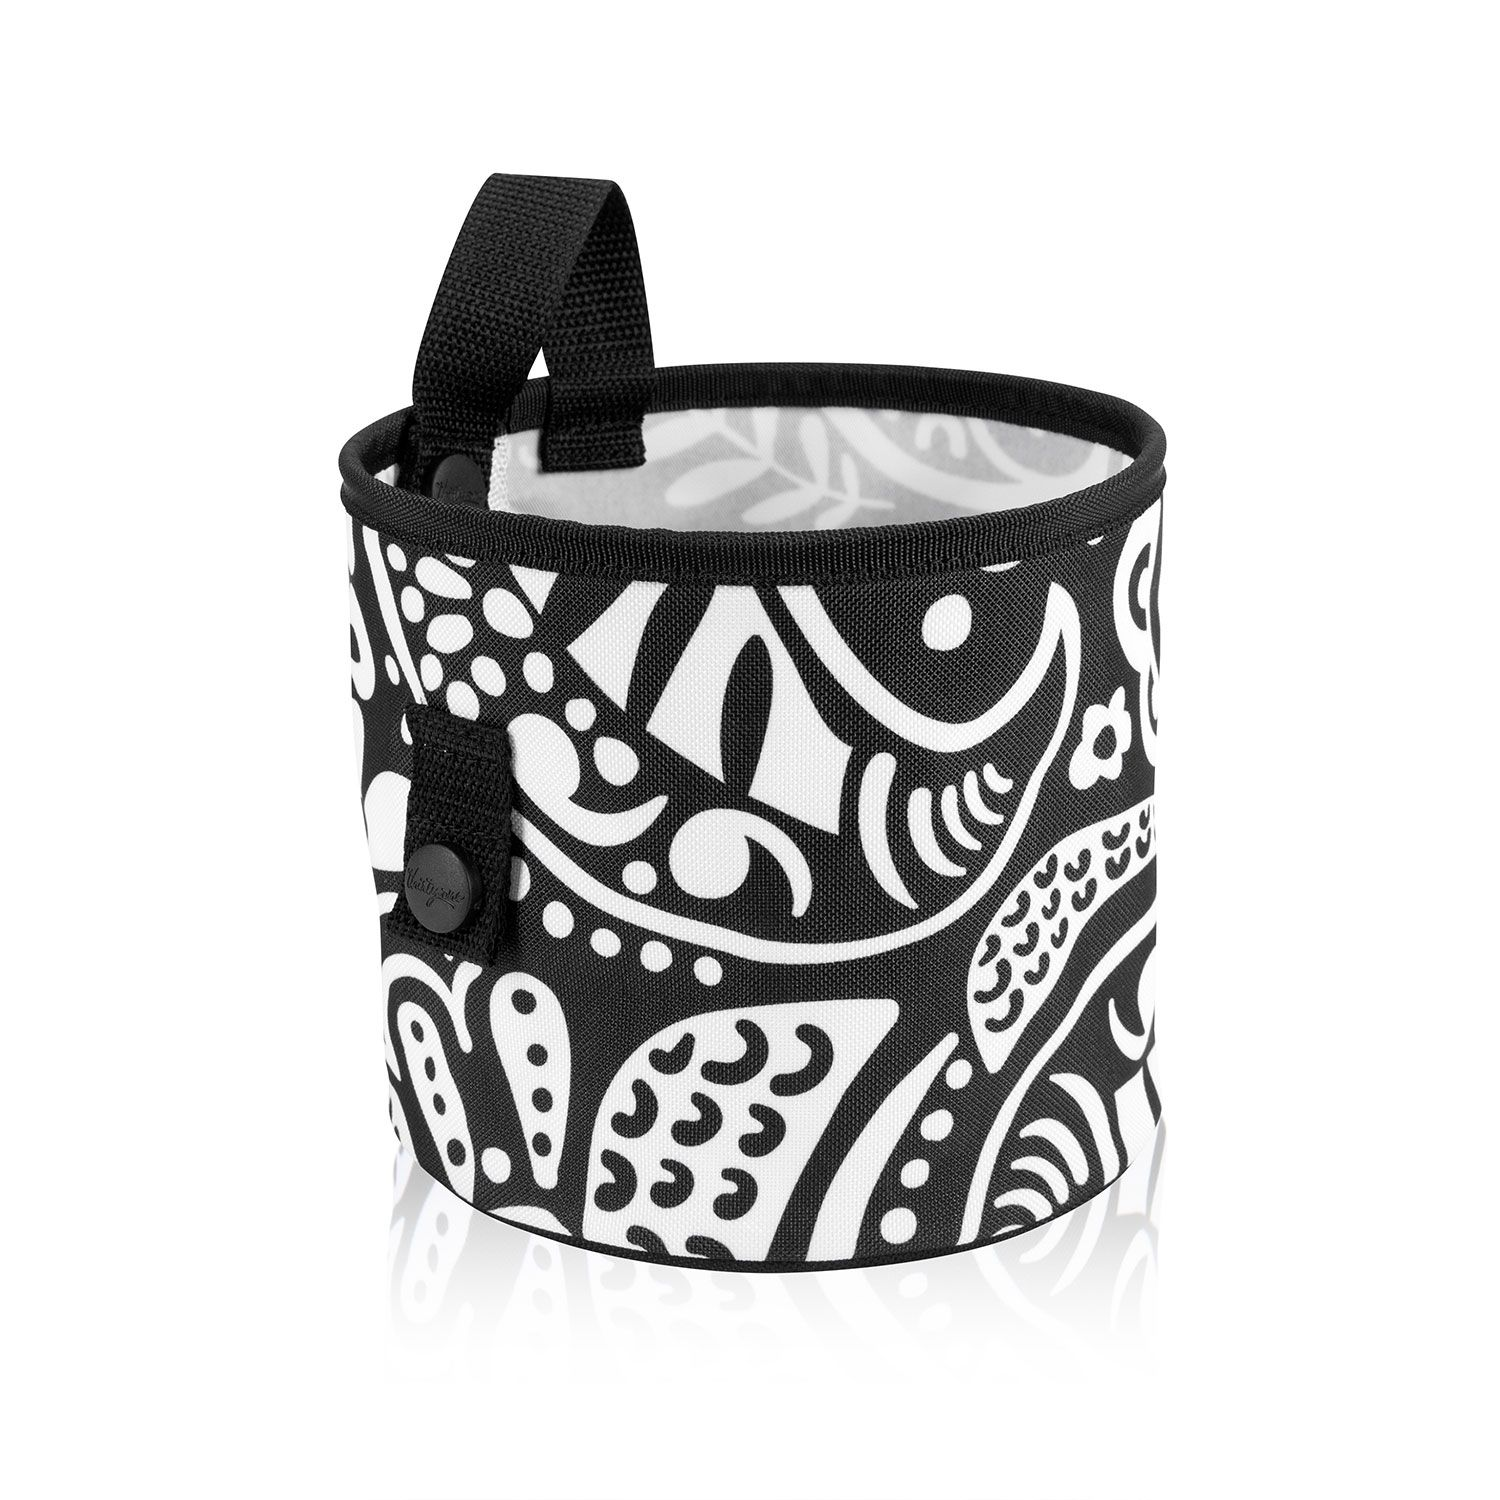 Oh snap bin ideas - Oh Snap Bin In Black Playful Parade For 10 Snaps Are The Secret Of